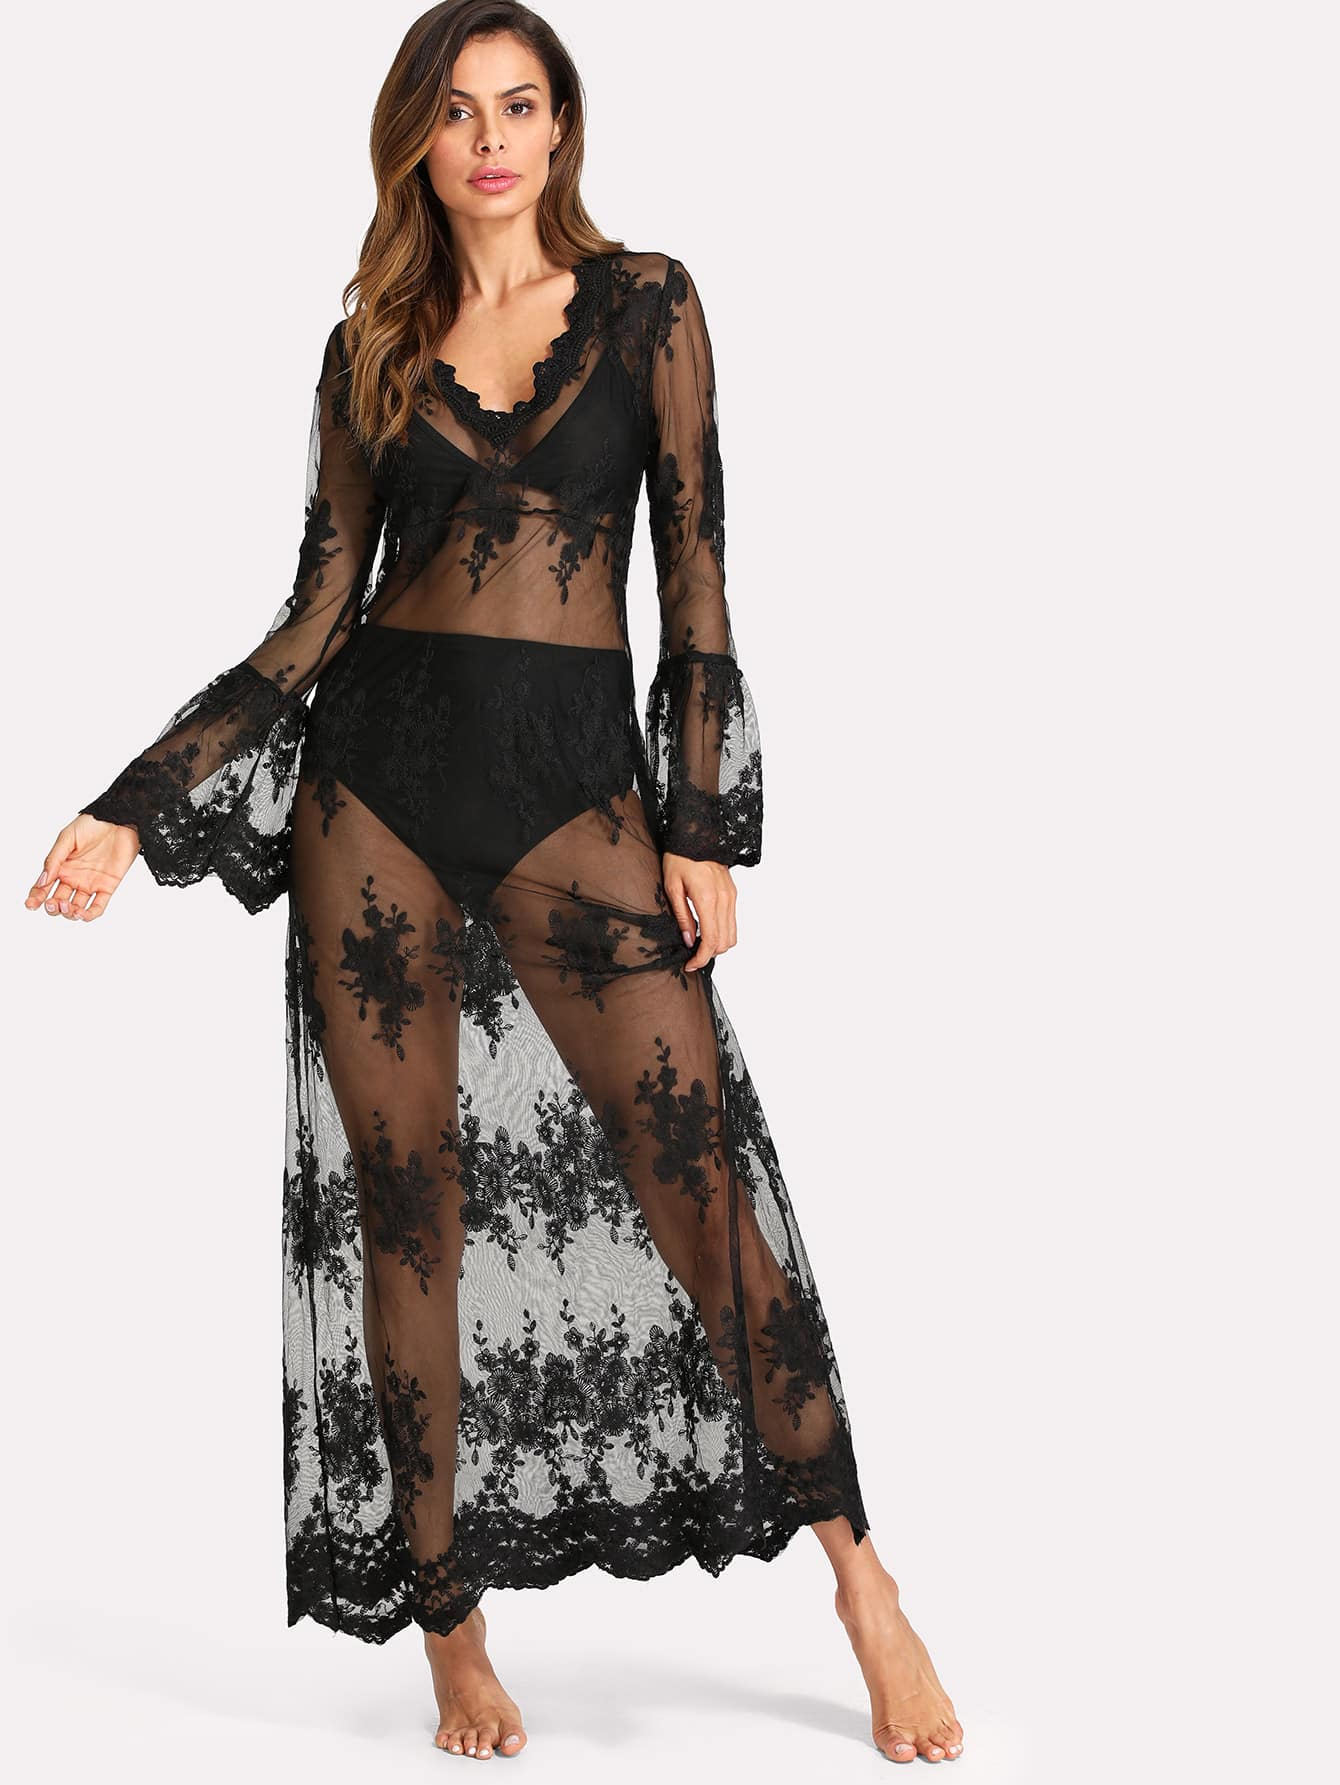 Flounce Sleeve Sheer Embroidered Mesh Dress flounce string bra with sheer briefs